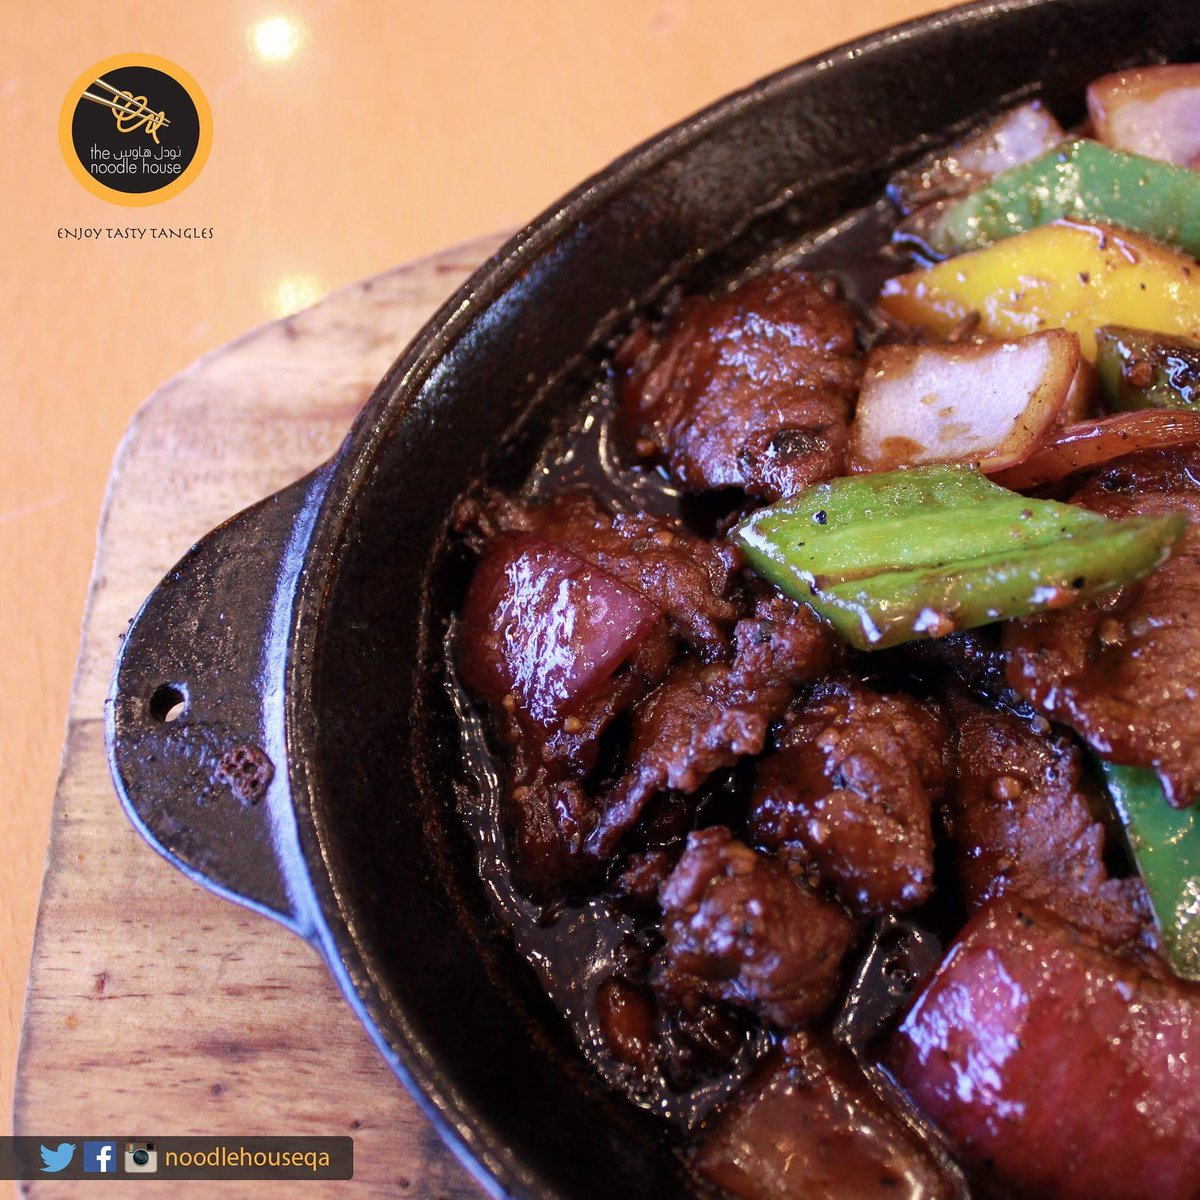 Life is so endlessly delicious with The Noodle House. Have you tried our black pepper beef? :) https://t.co/qmjK2Un0p7